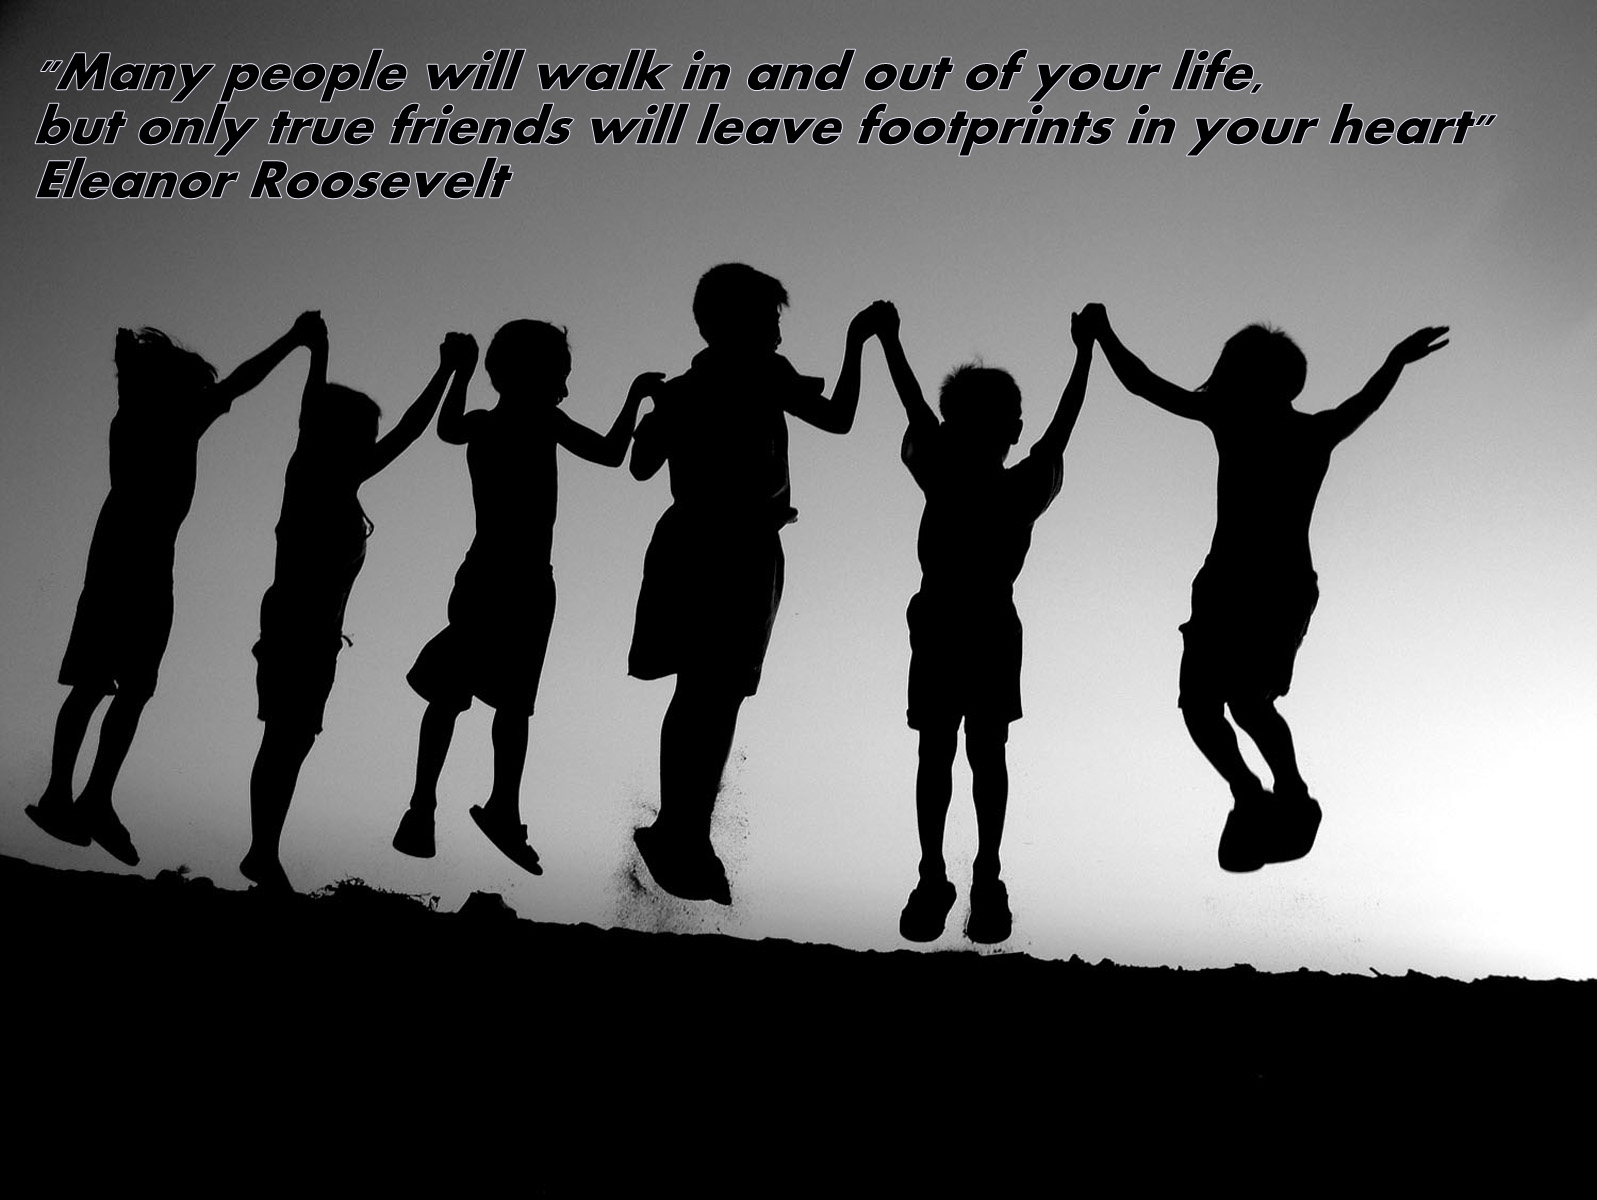 Cute Friendship Quote Of The Day (May 25,2011)